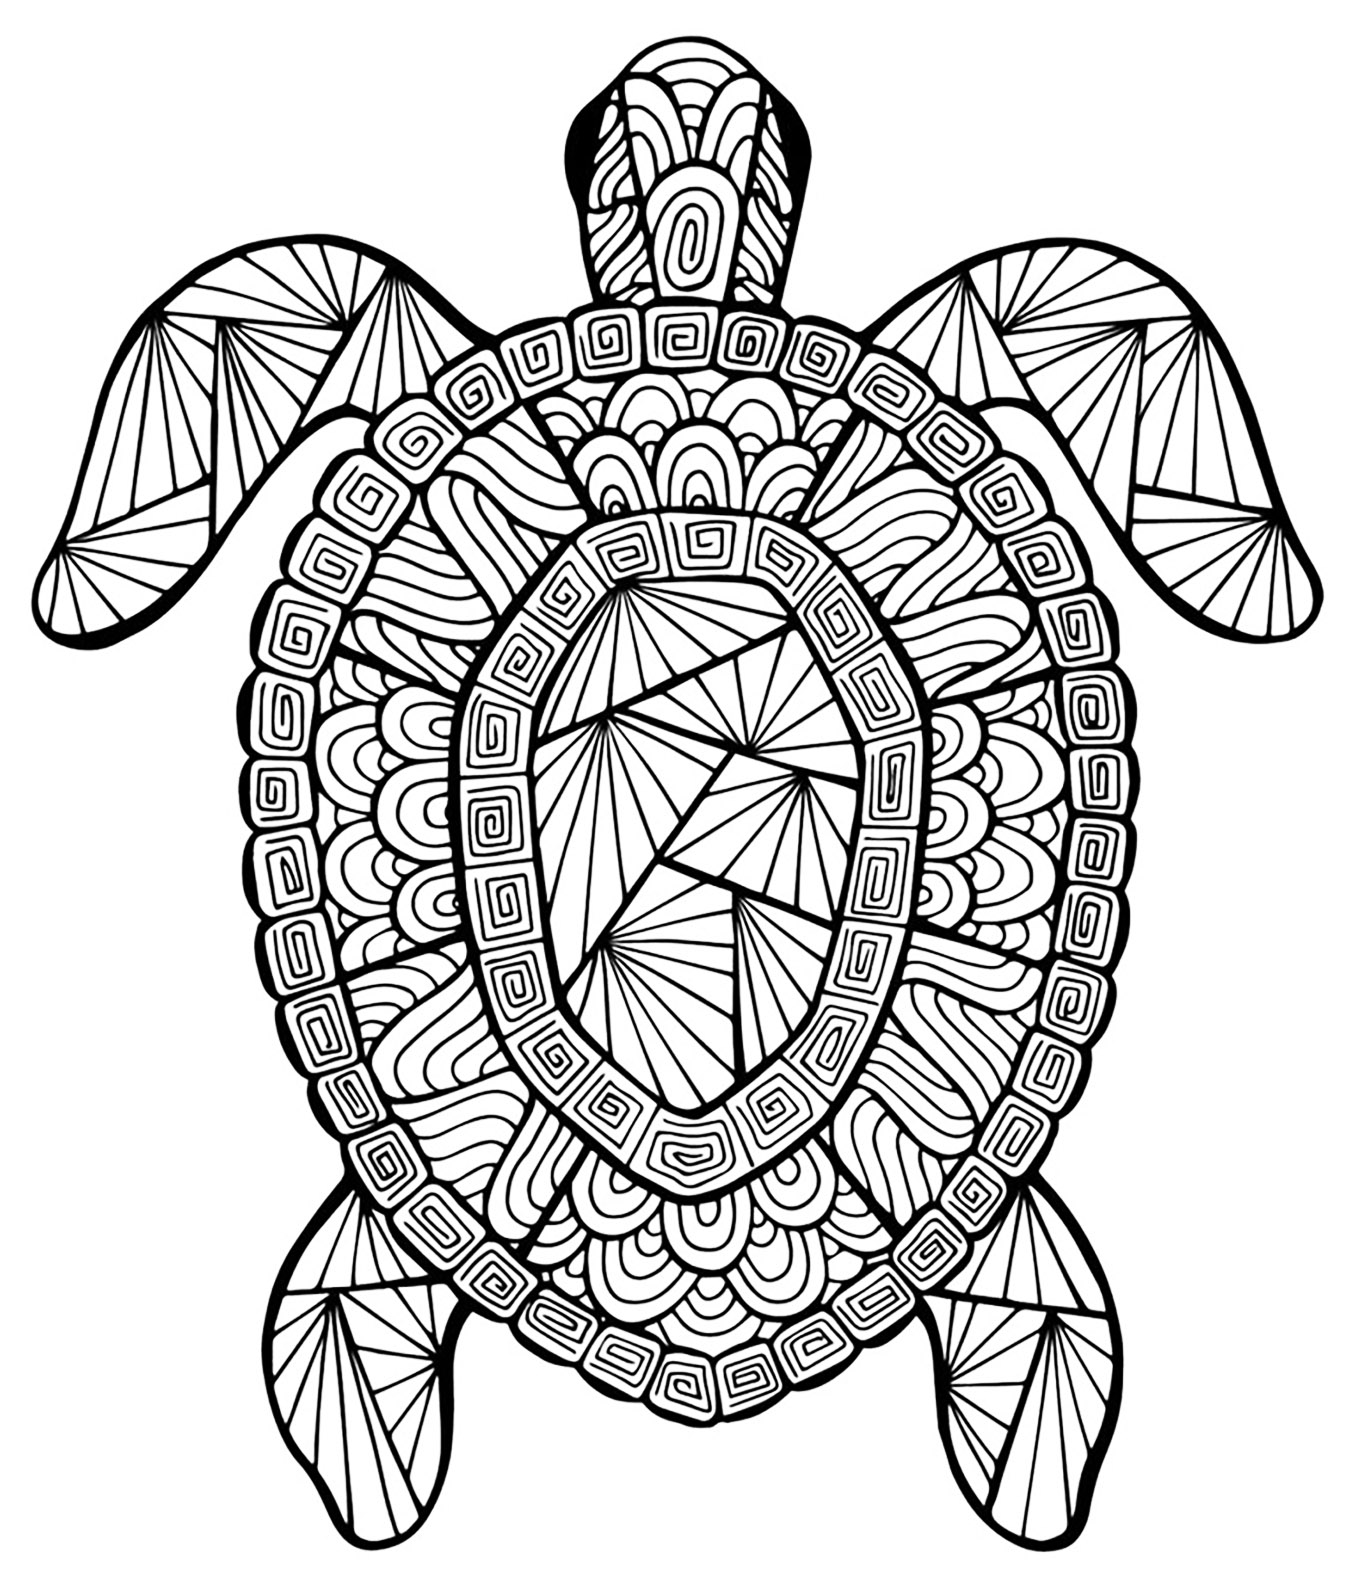 coloring pages turtle turtles to download for free turtles kids coloring pages turtle coloring pages